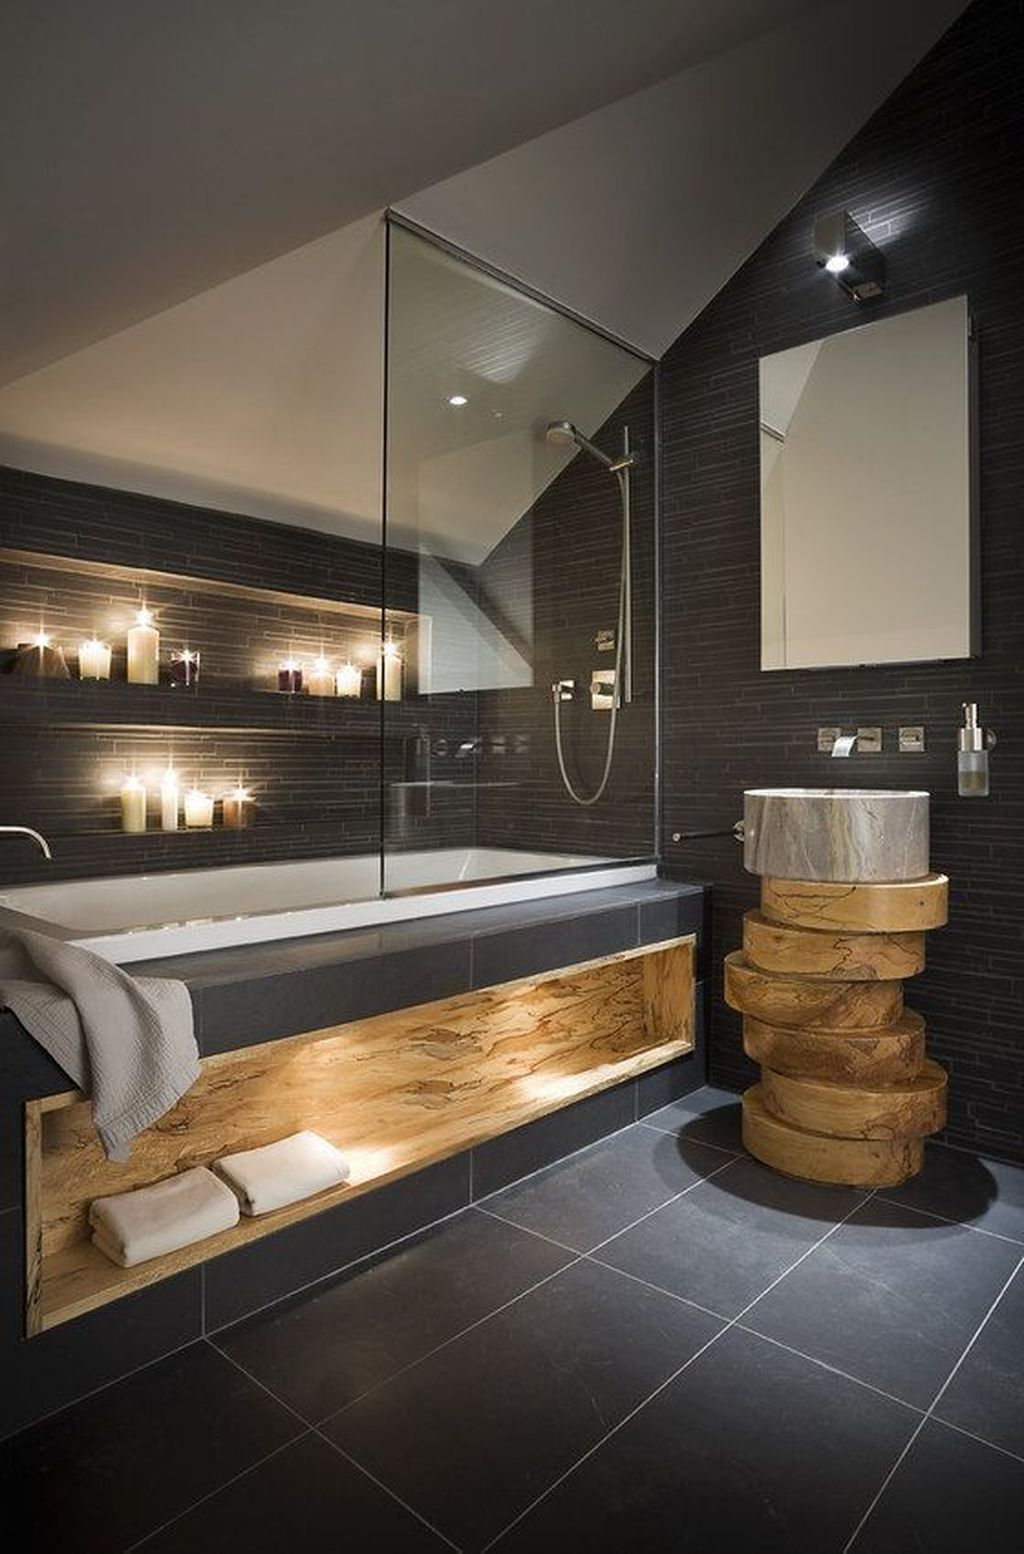 Fabulous Architecture Bathroom Home Decor Ideas35